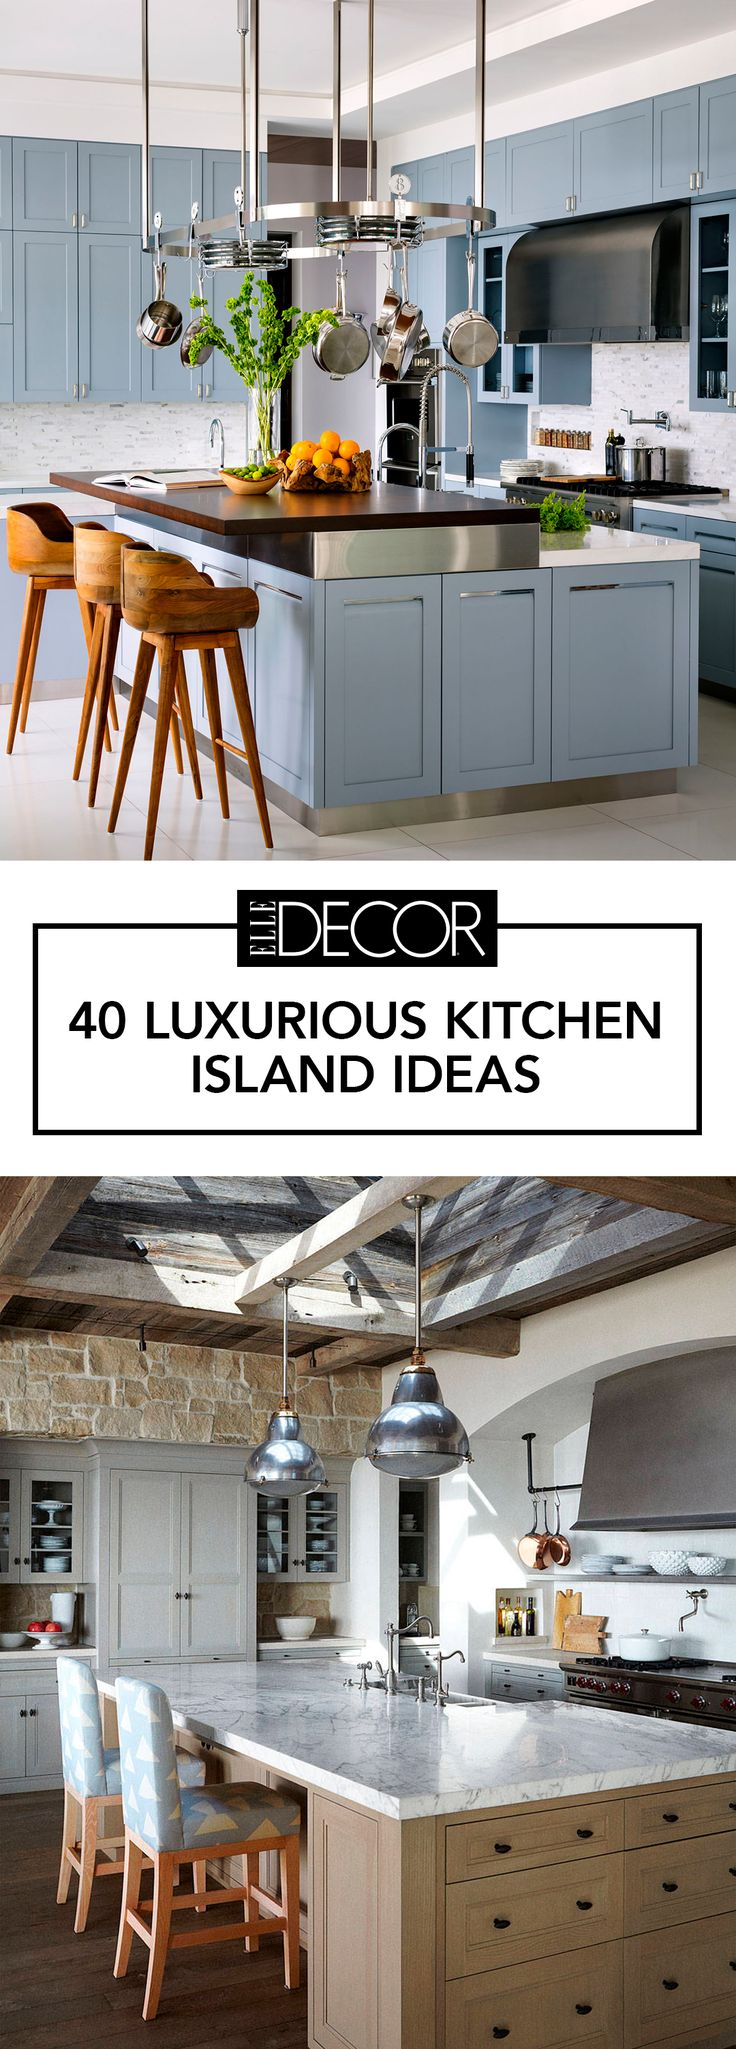 The top 40 luxurious kitchen island ideas to inspire your next home improvement project.